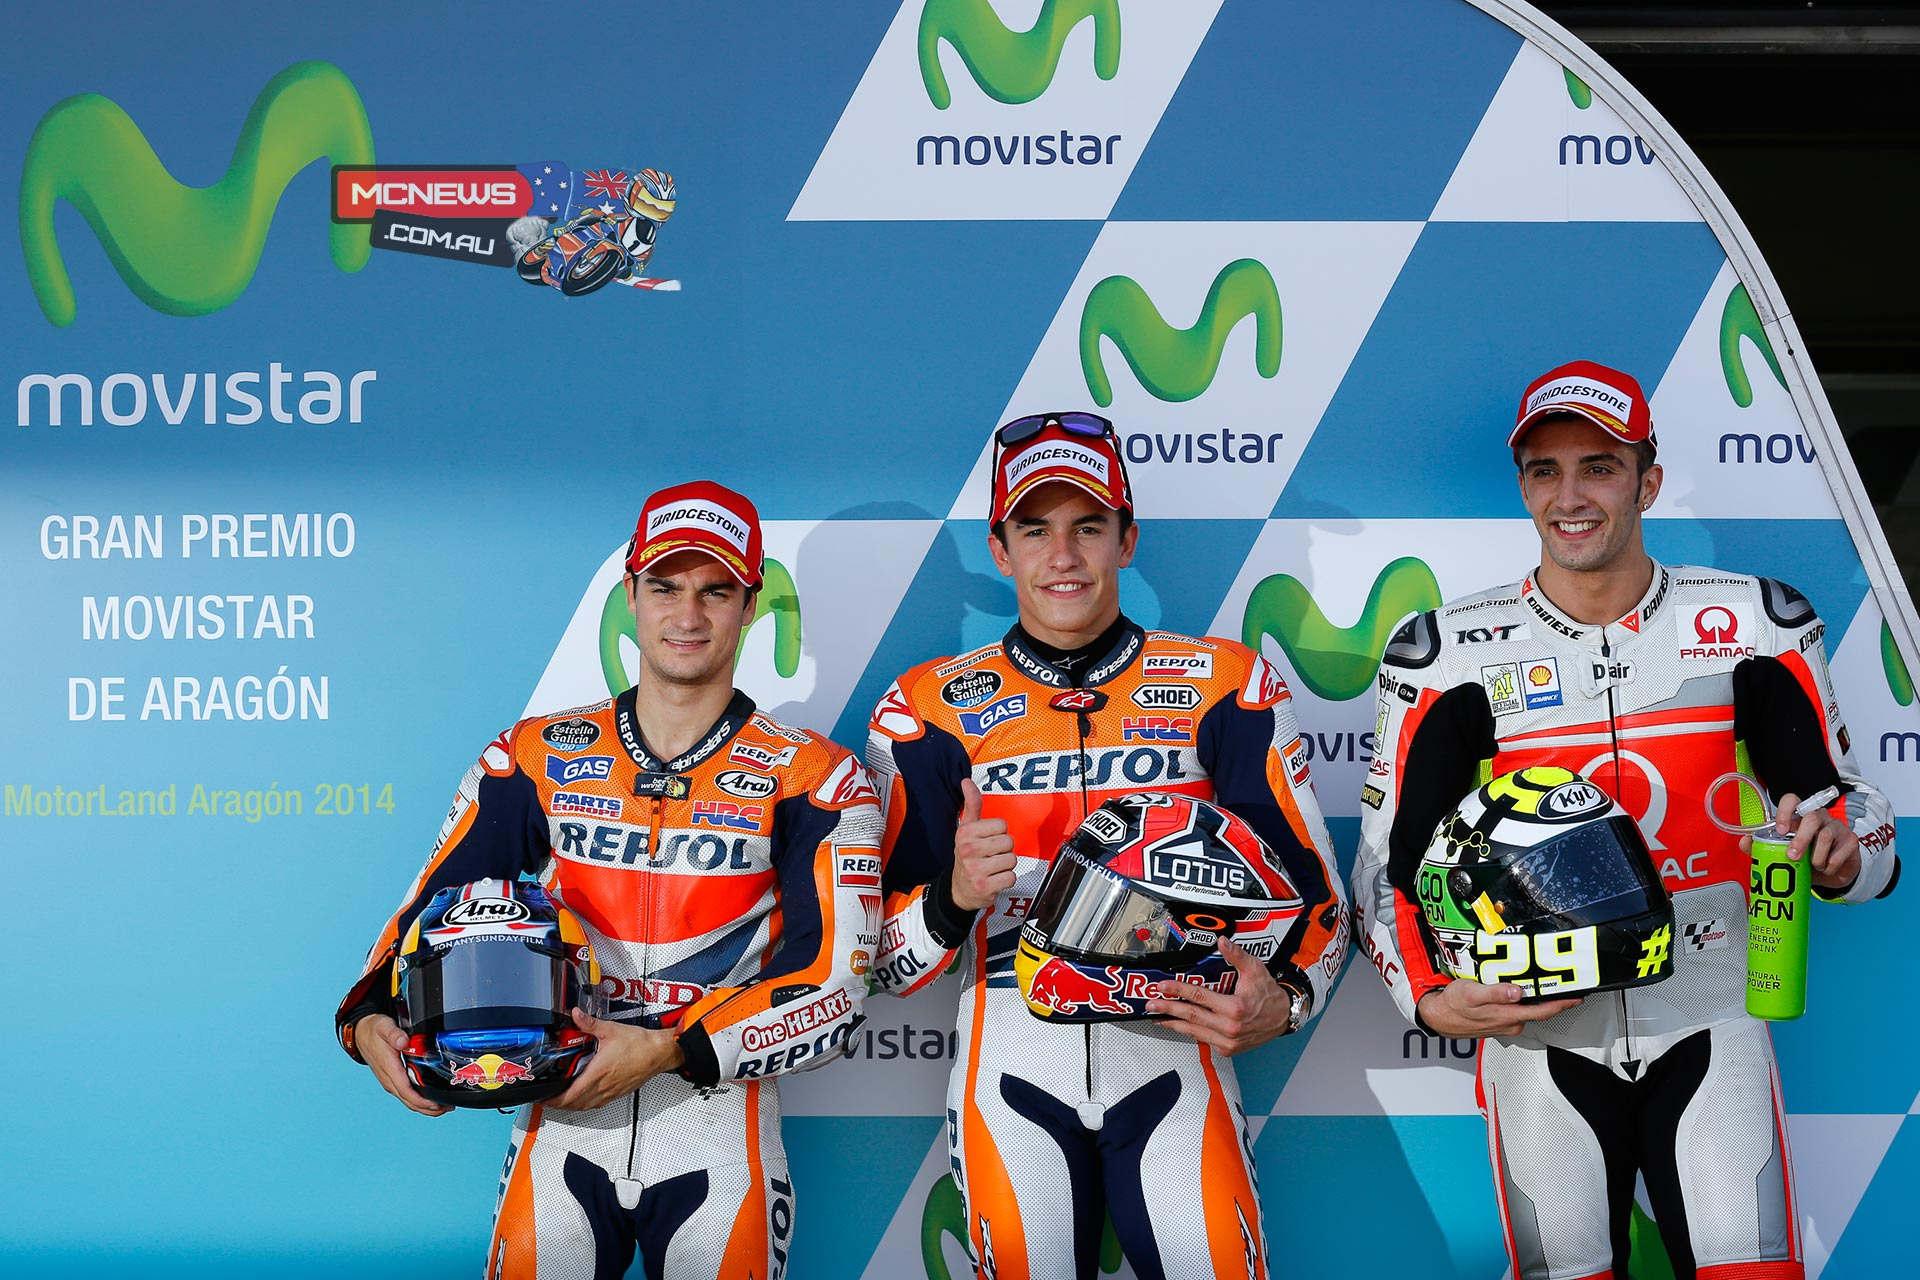 The MotoGP™ Q2 session on Saturday afternoon in Spain resulted in Marc Marquez taking pole at the Gran Premio Movistar de Aragon, with Dani Pedrosa and Andrea Iannone also achieving front row slots.